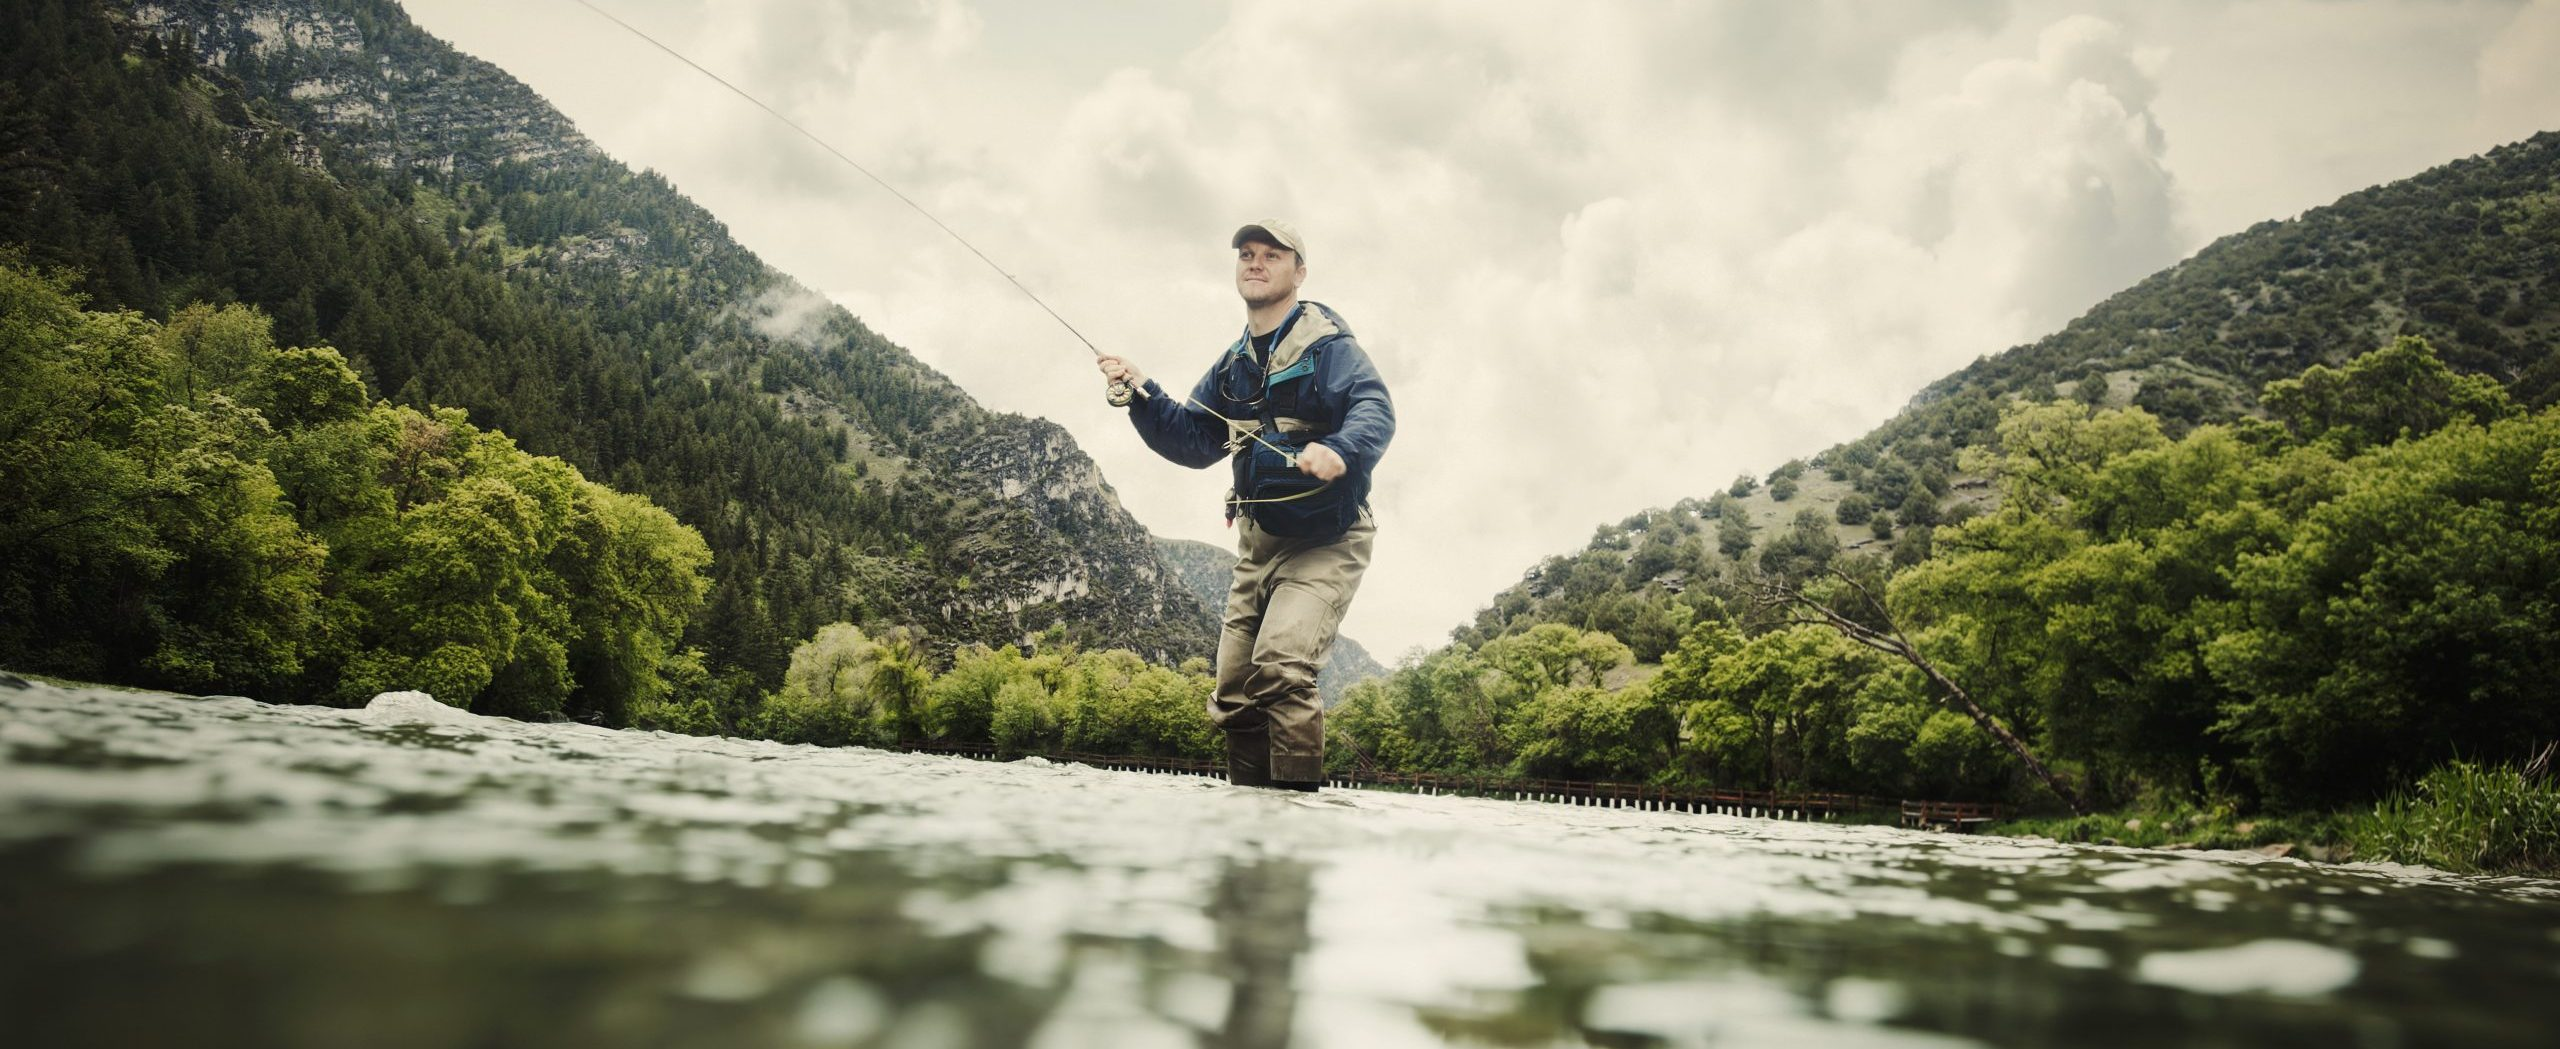 Best Rivers to Fish